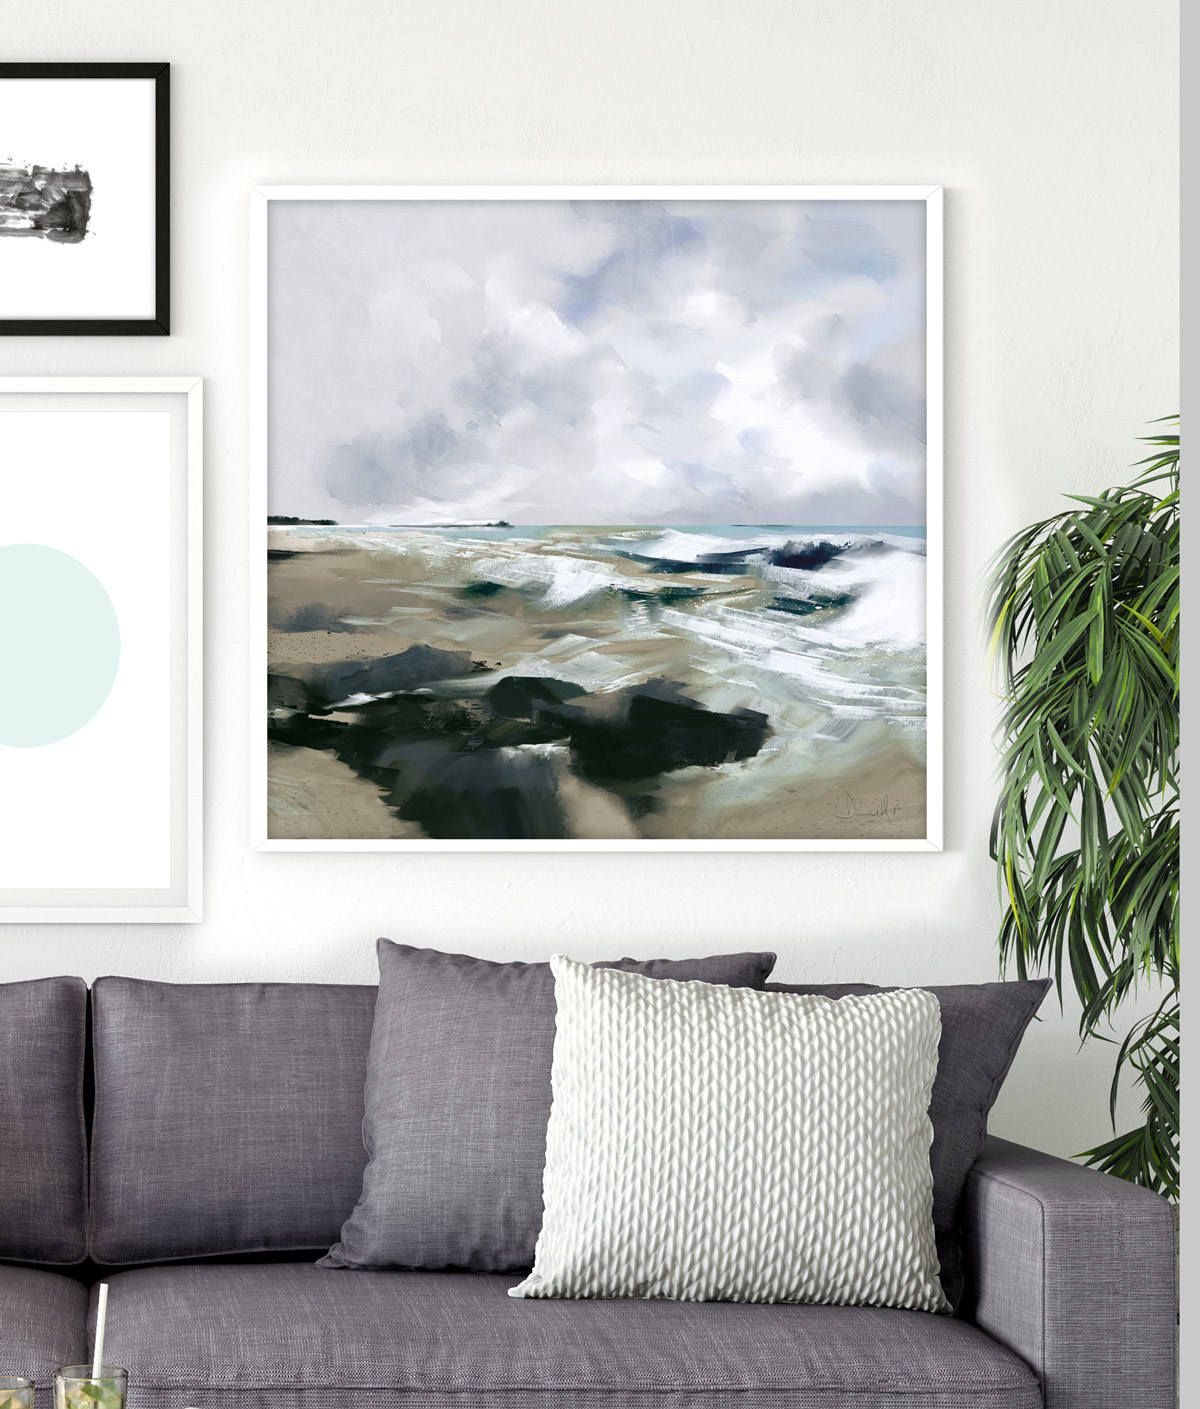 Printable Abstract Art Seascape Painting 24x36 Print Dan Hobday Abstract Seascape Large Wall Art Ocean Art Ocean Print Navy Blue Art Seascape Paintings Navy Blue Art Ocean Art